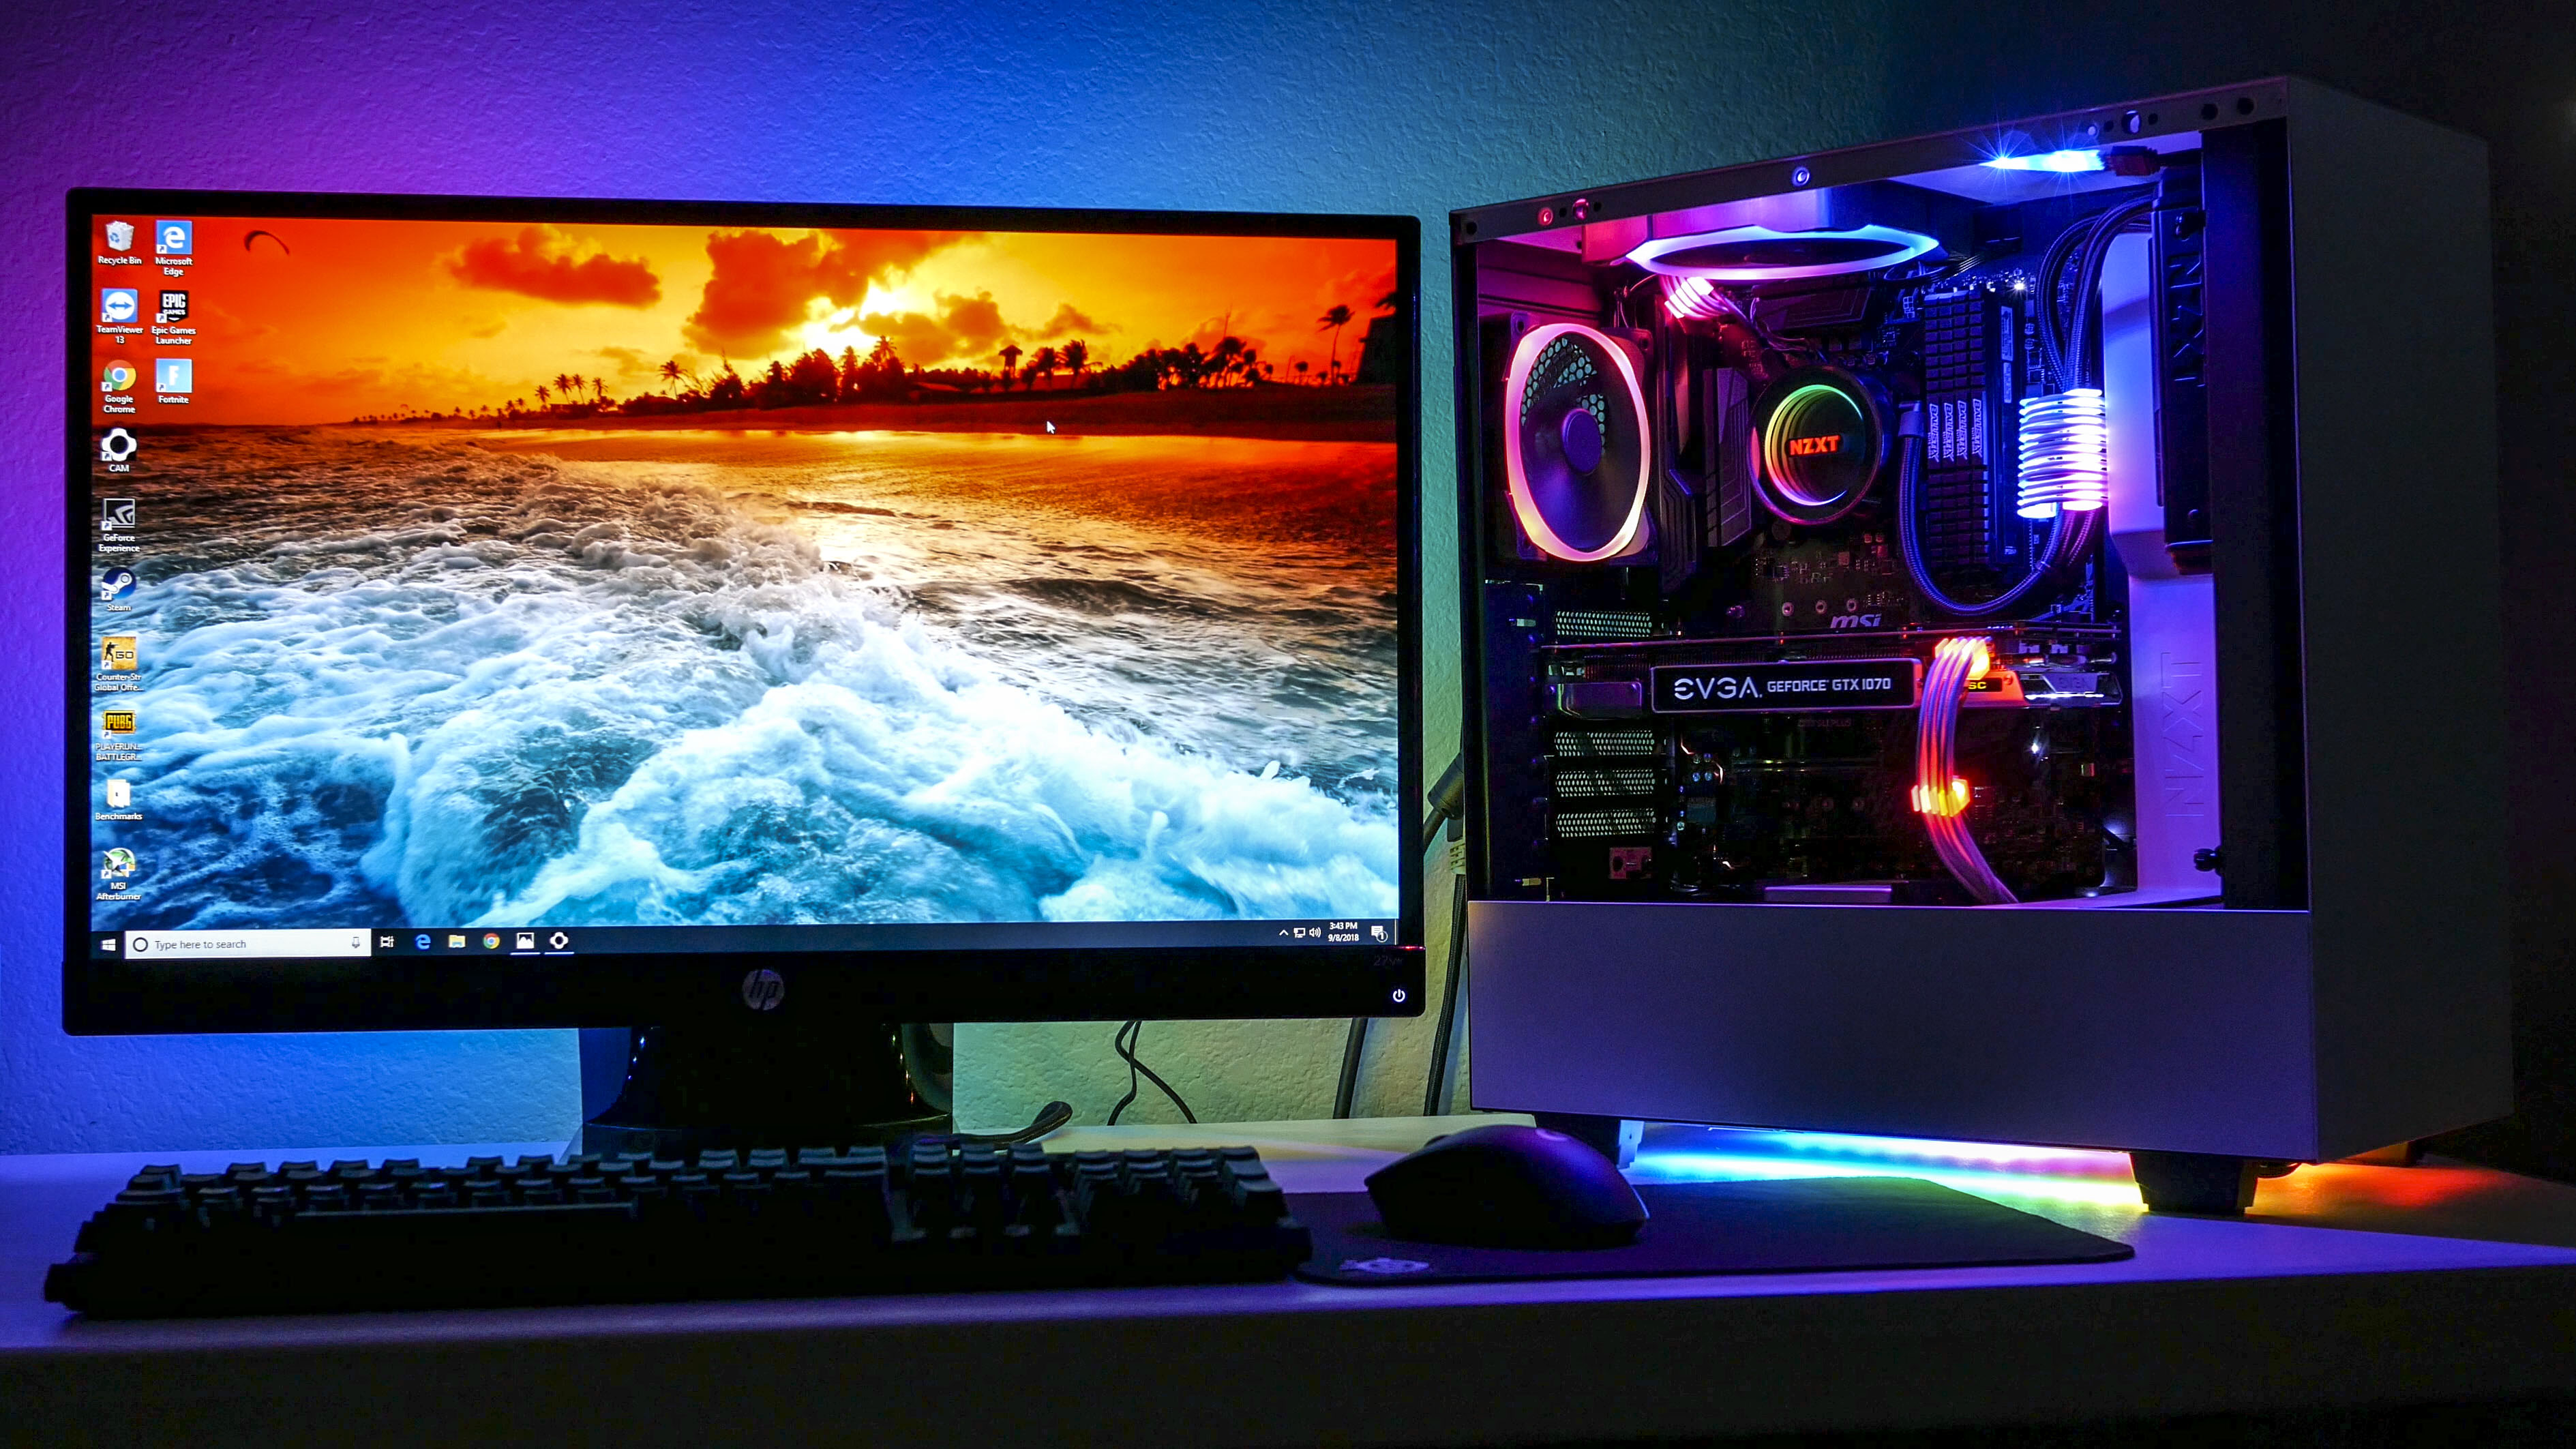 NZXT Hue 2 RGB LED Strips Extension Kit 2x 300mm RGB LED Strip CAM-Powered